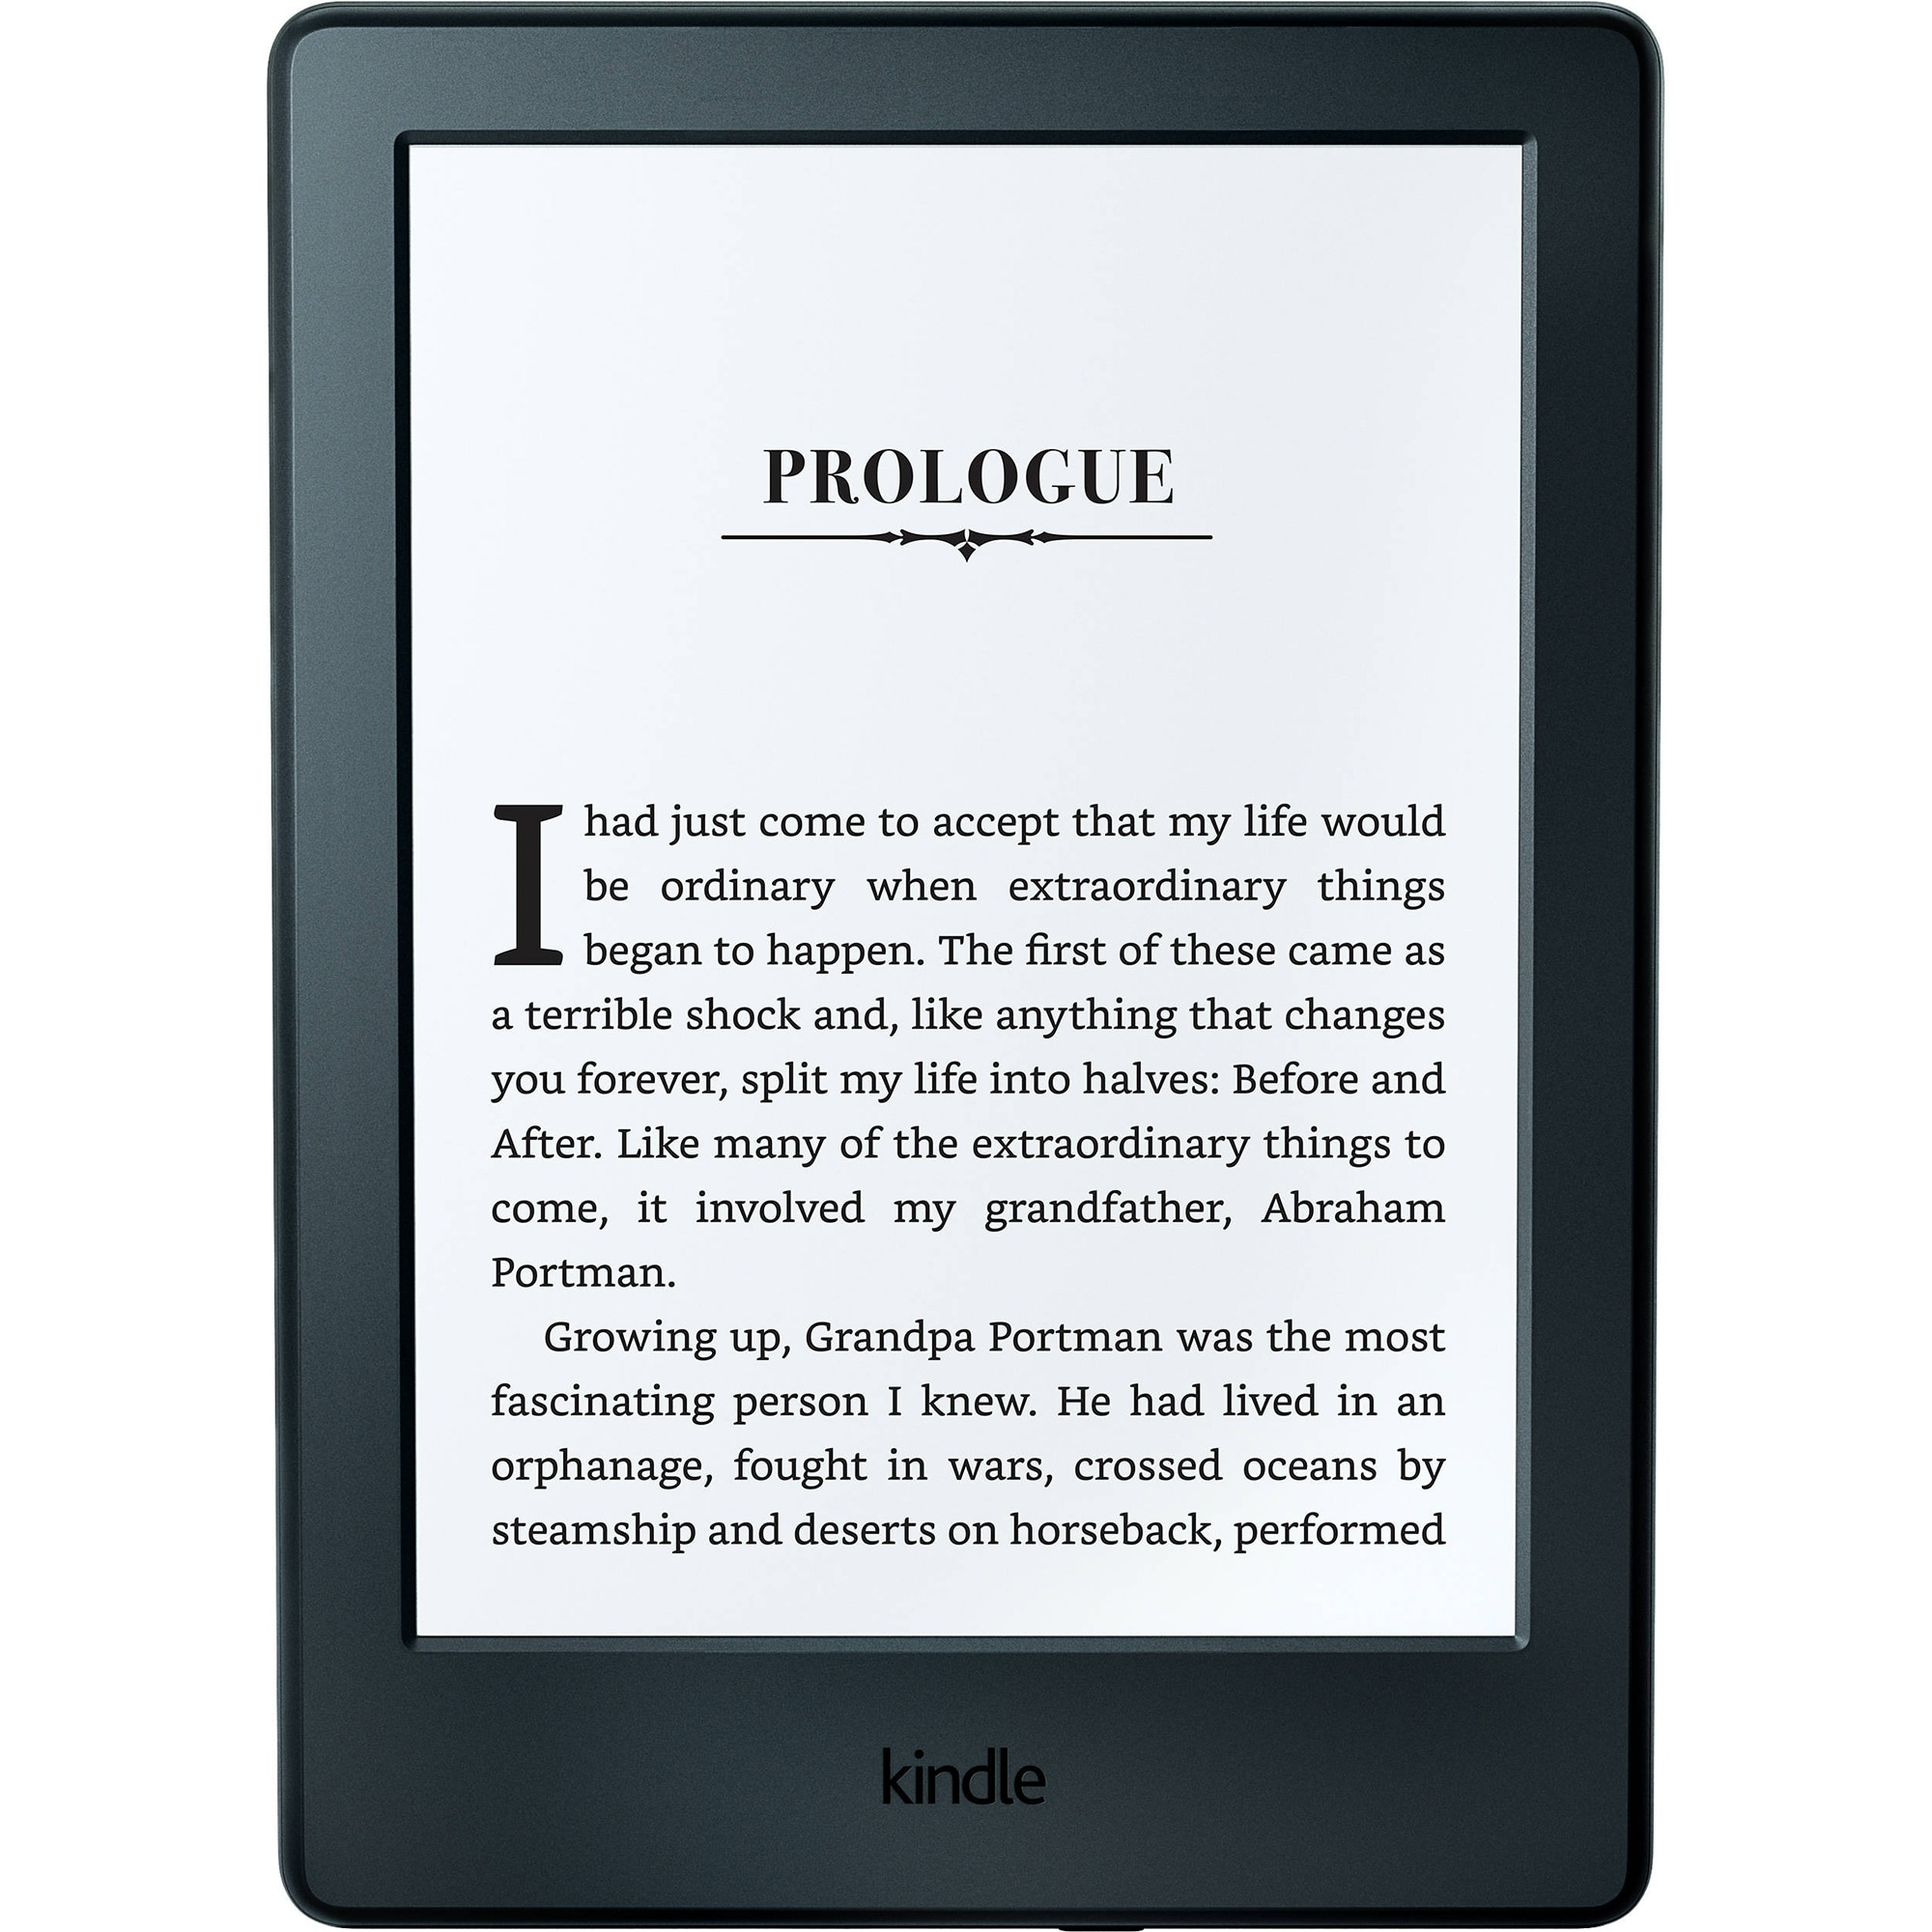 Fotografie eBook Reader New Kindle Glare 6, Touch Screen, 8th Generation, Wi-Fi, Negru